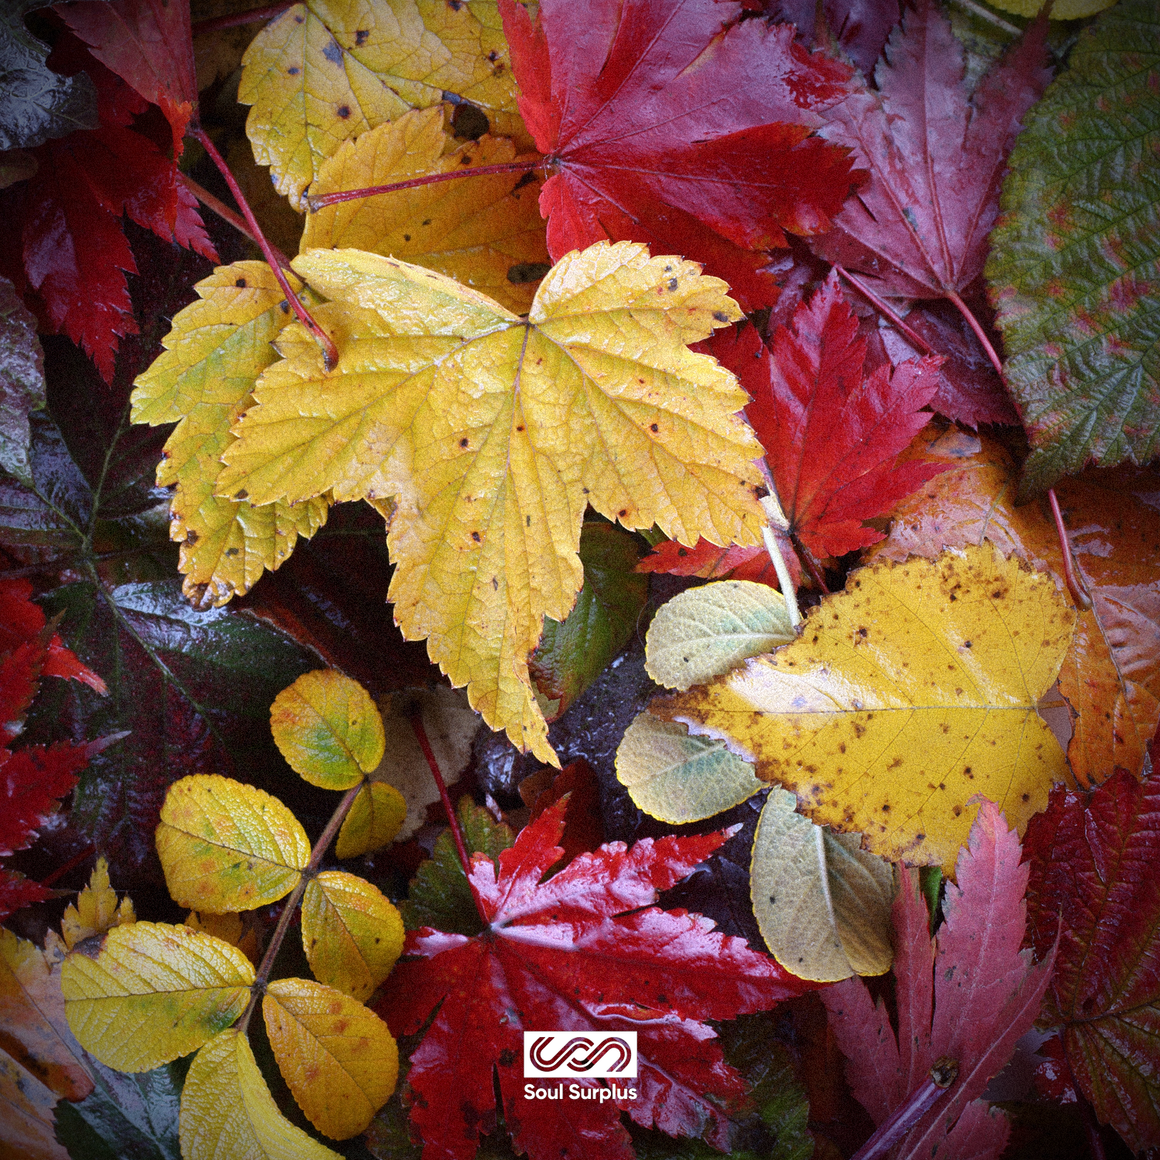 Autumn Bliss (Sample Pack) [Royalty-Free]